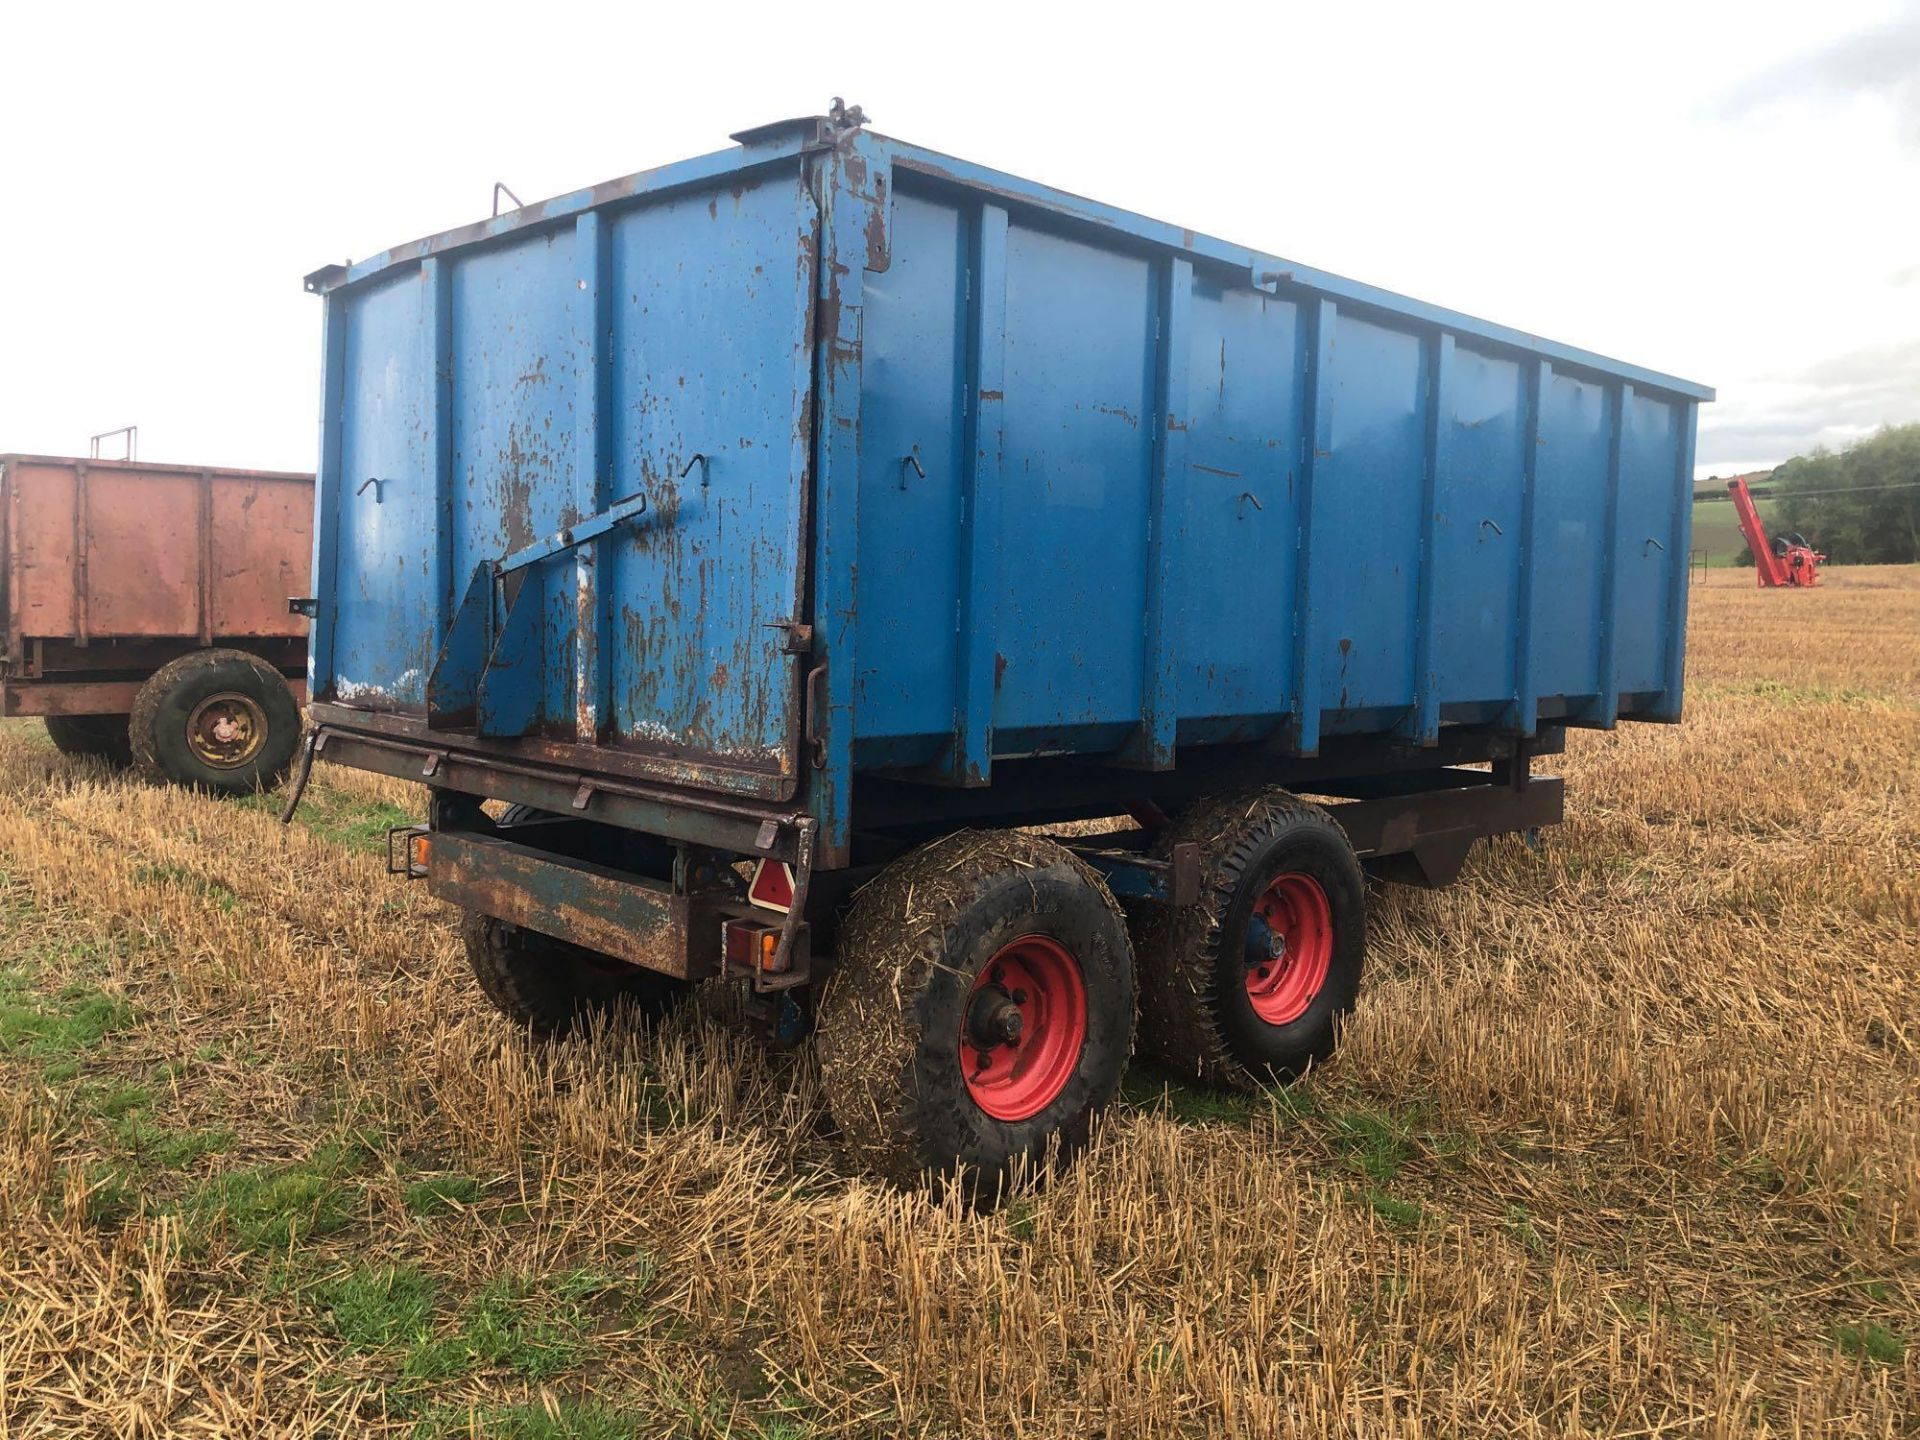 8t twin axle trailer with manual rear door and grain chute. C/w silage sides. On 12.5/80-15.3 wheels - Image 4 of 8